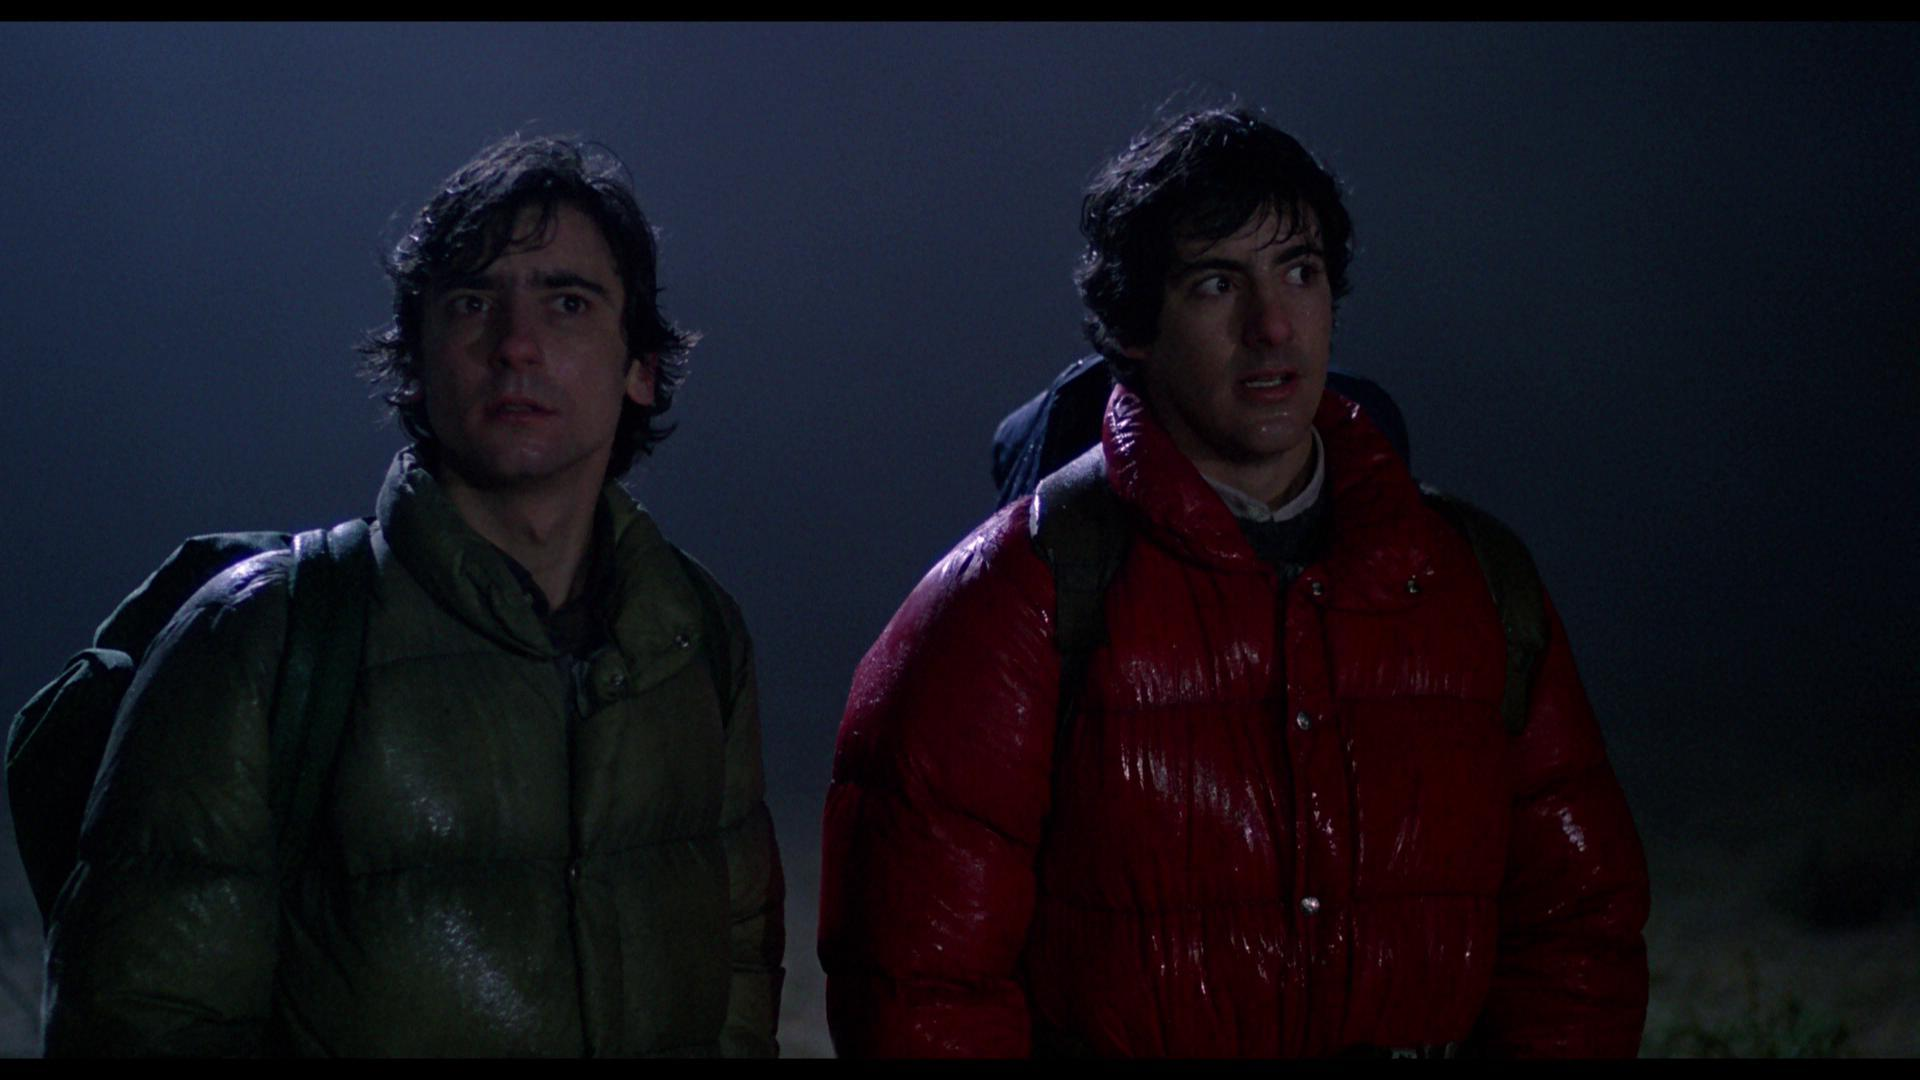 David (David Naughton) and Jack (Griffin Dunne) wander along the moor and sense the presence of something dangerous under the light of the full moon.